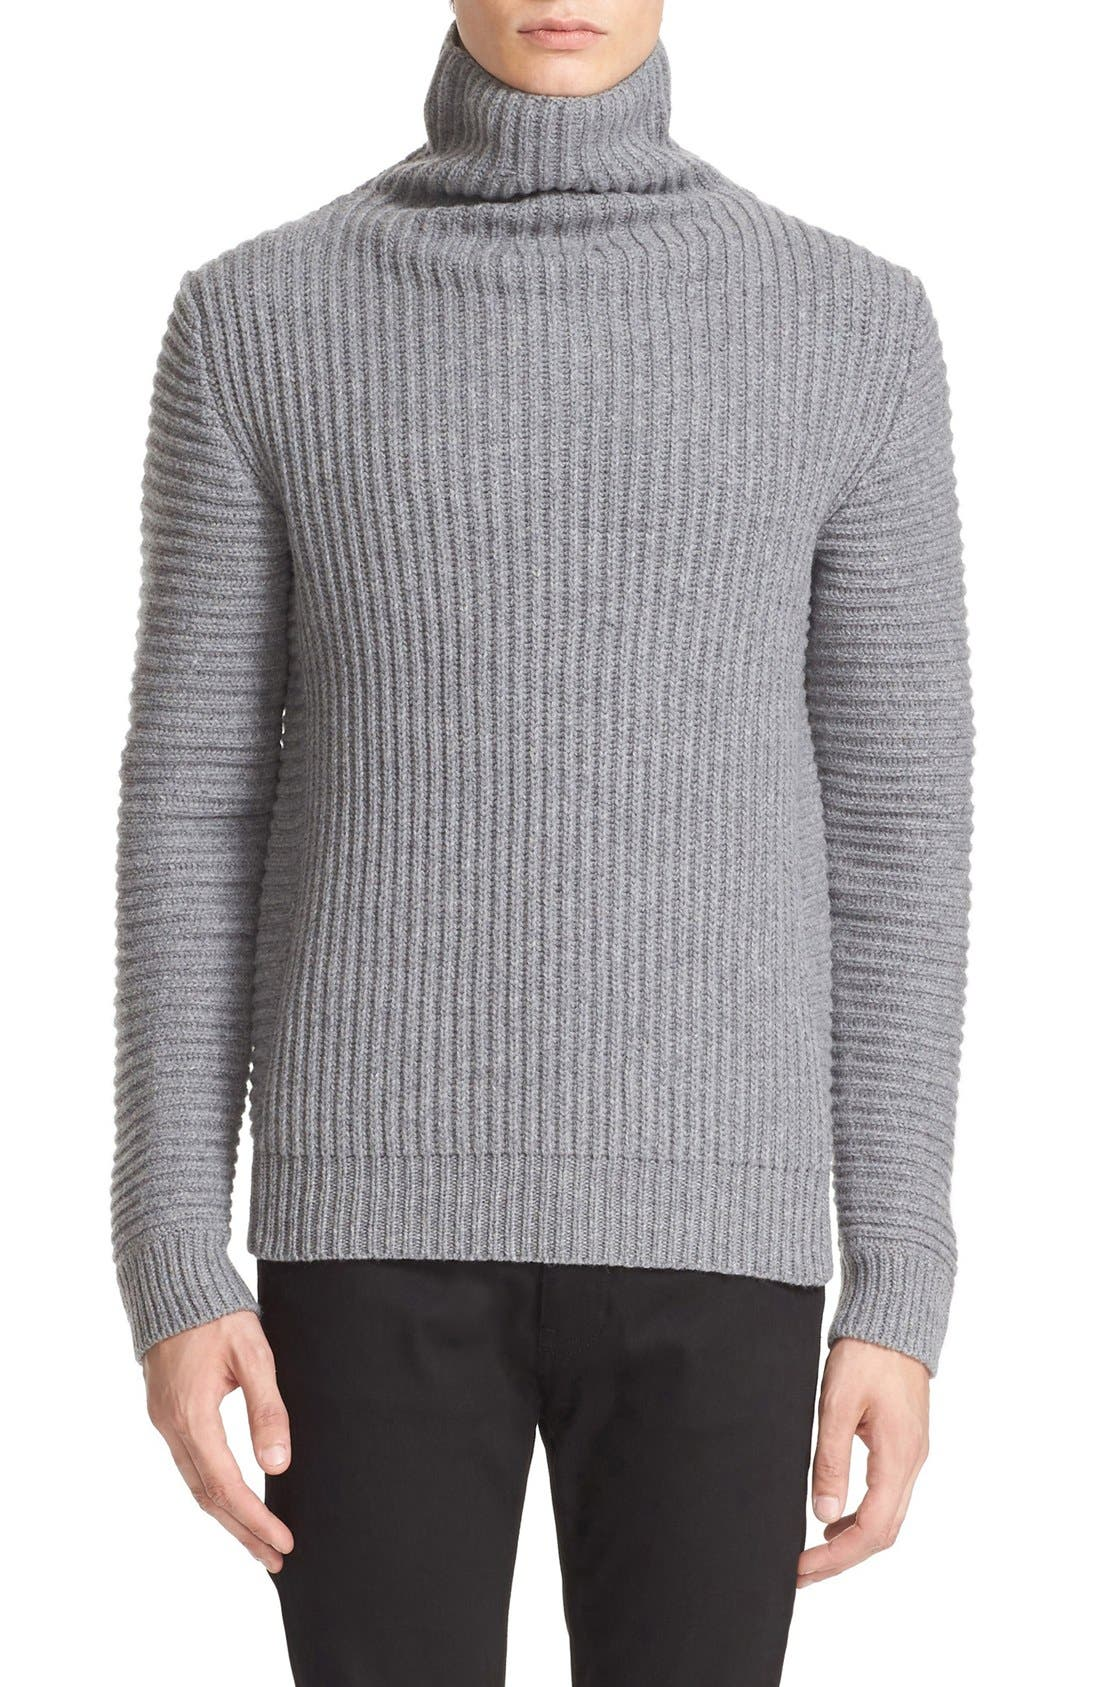 ACNE STUDIOS,                             Kalle Ribbed Turtleneck Sweater,                             Main thumbnail 1, color,                             020